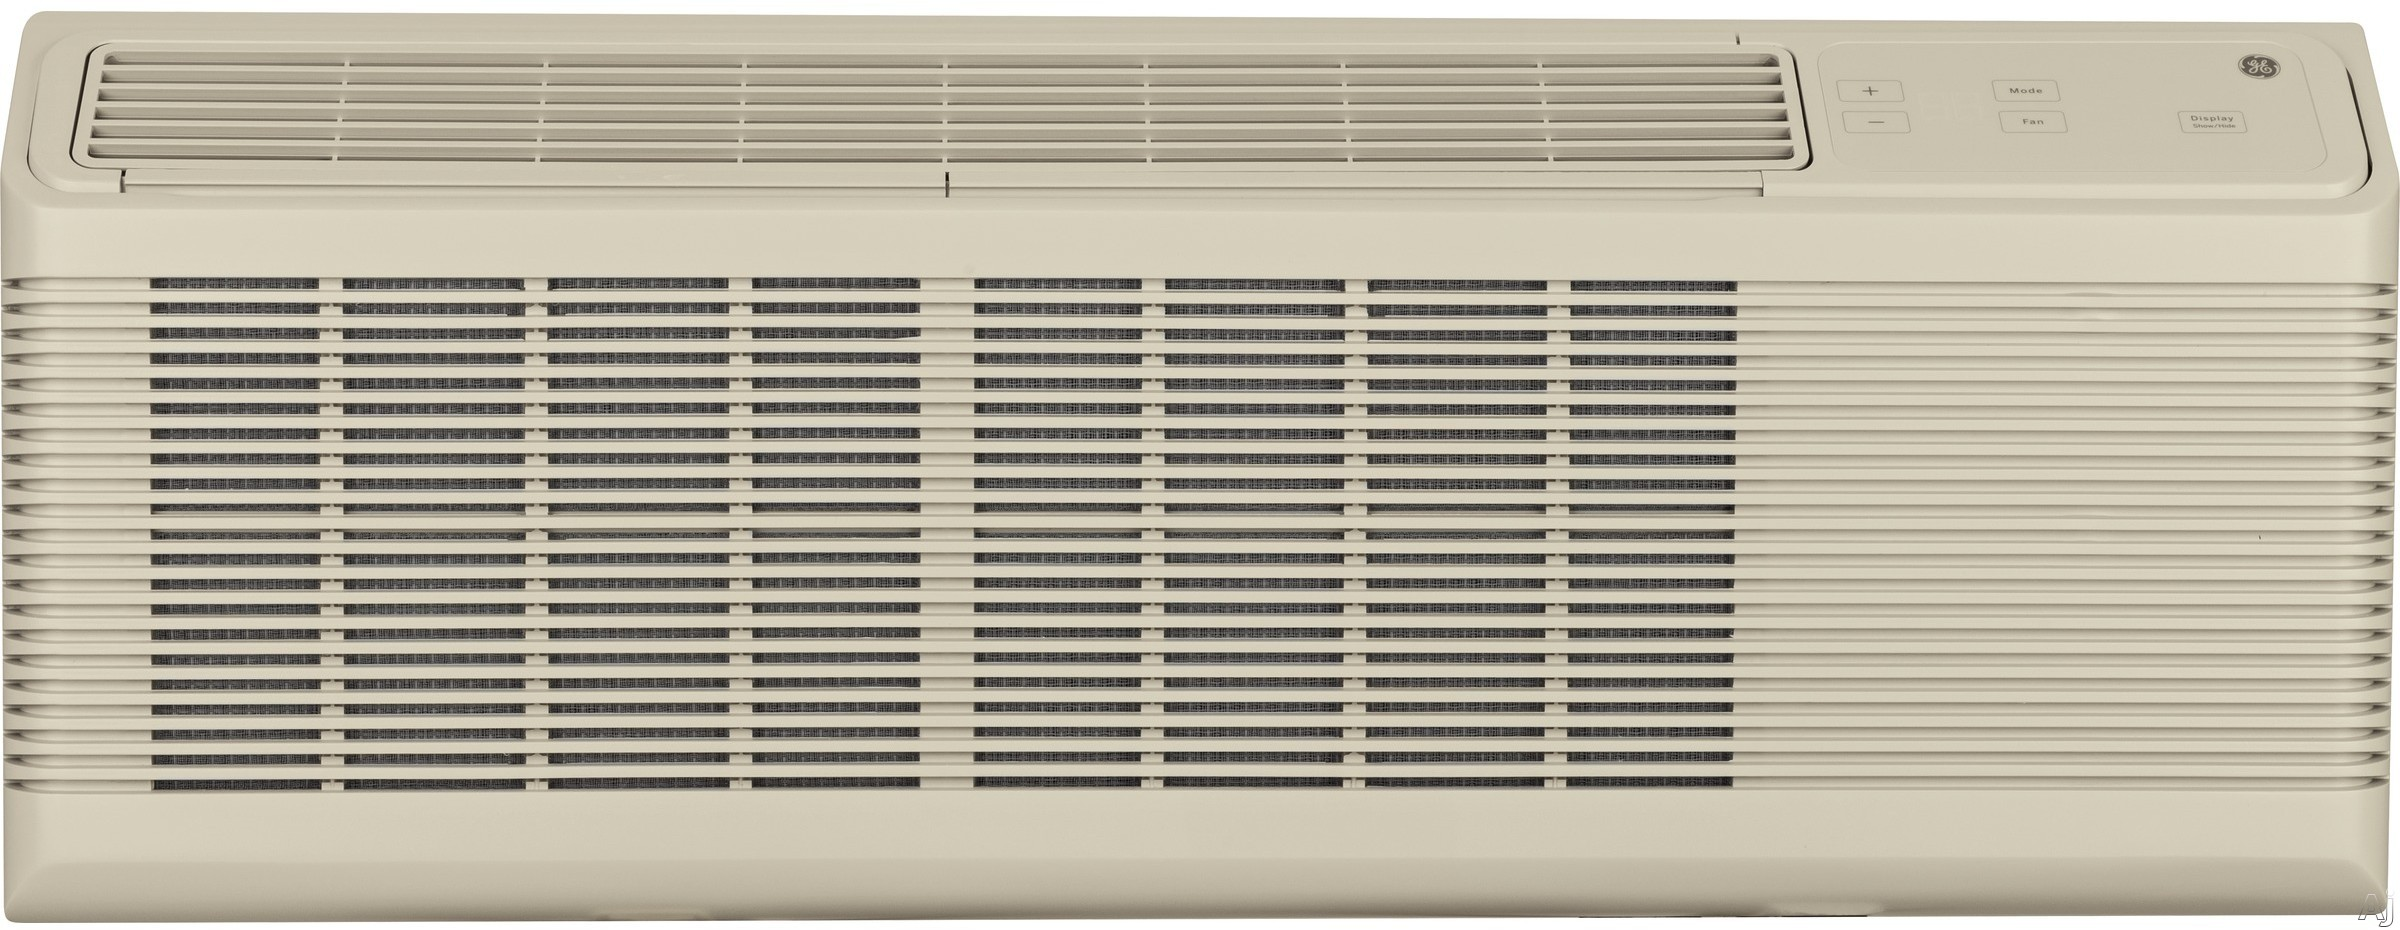 GE Zoneline AZ45E09EAP 9,500 BTU Packaged Terminal Air Conditioner with Electric Heat, Dry Air 25, Corrosion Protection, 12.1 EER, 3.5 Pints Per Hour Dehumidification, R410A Refrigerant and 265 Volt AZ45E09EAP